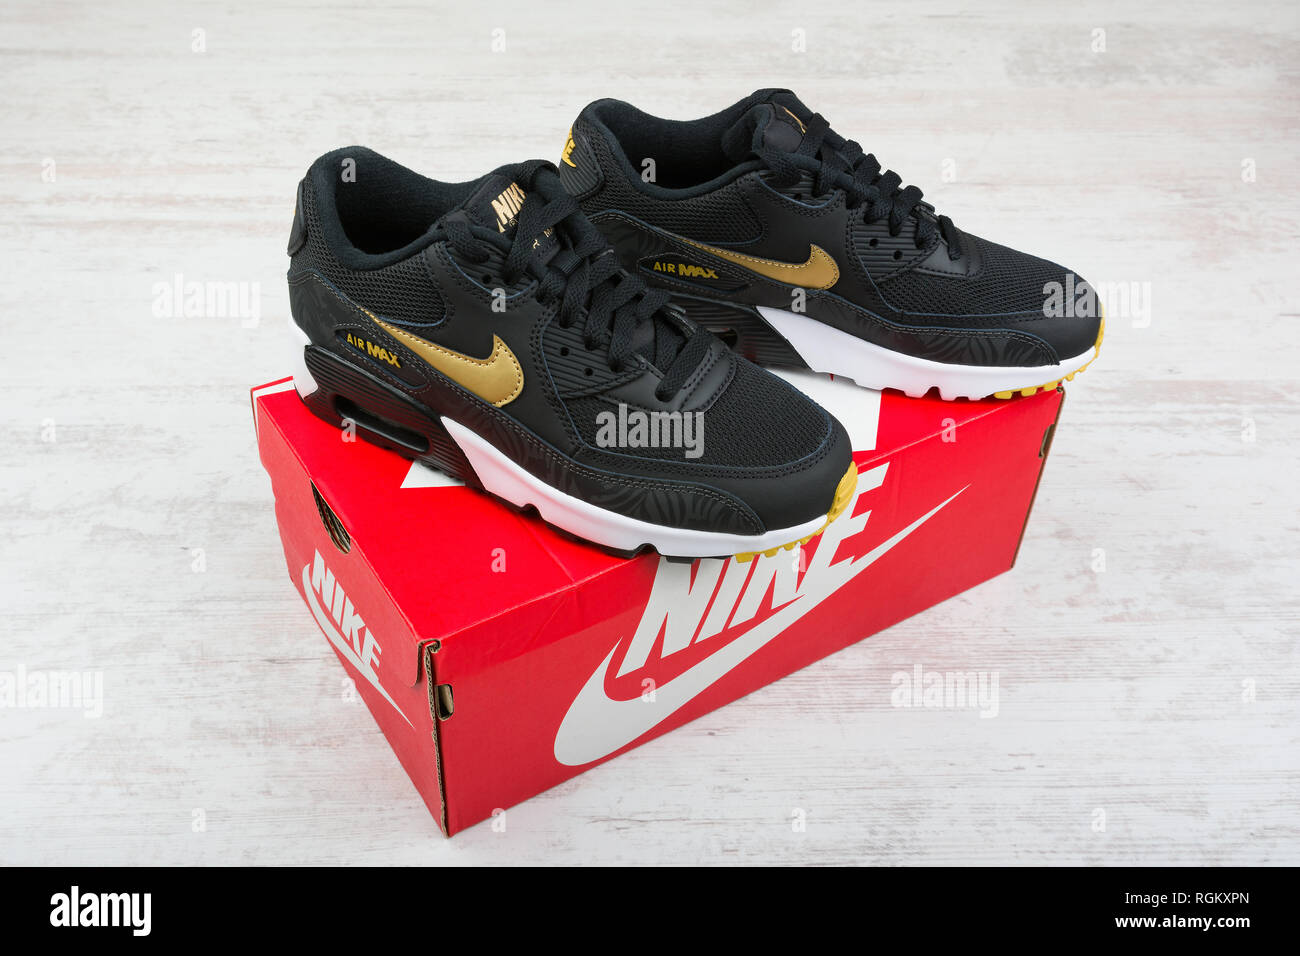 the latest 5f470 06d33 BURGAS, BULGARIA - DECEMBER 30, 2016  Nike Air MAX women s shoes - sneakers